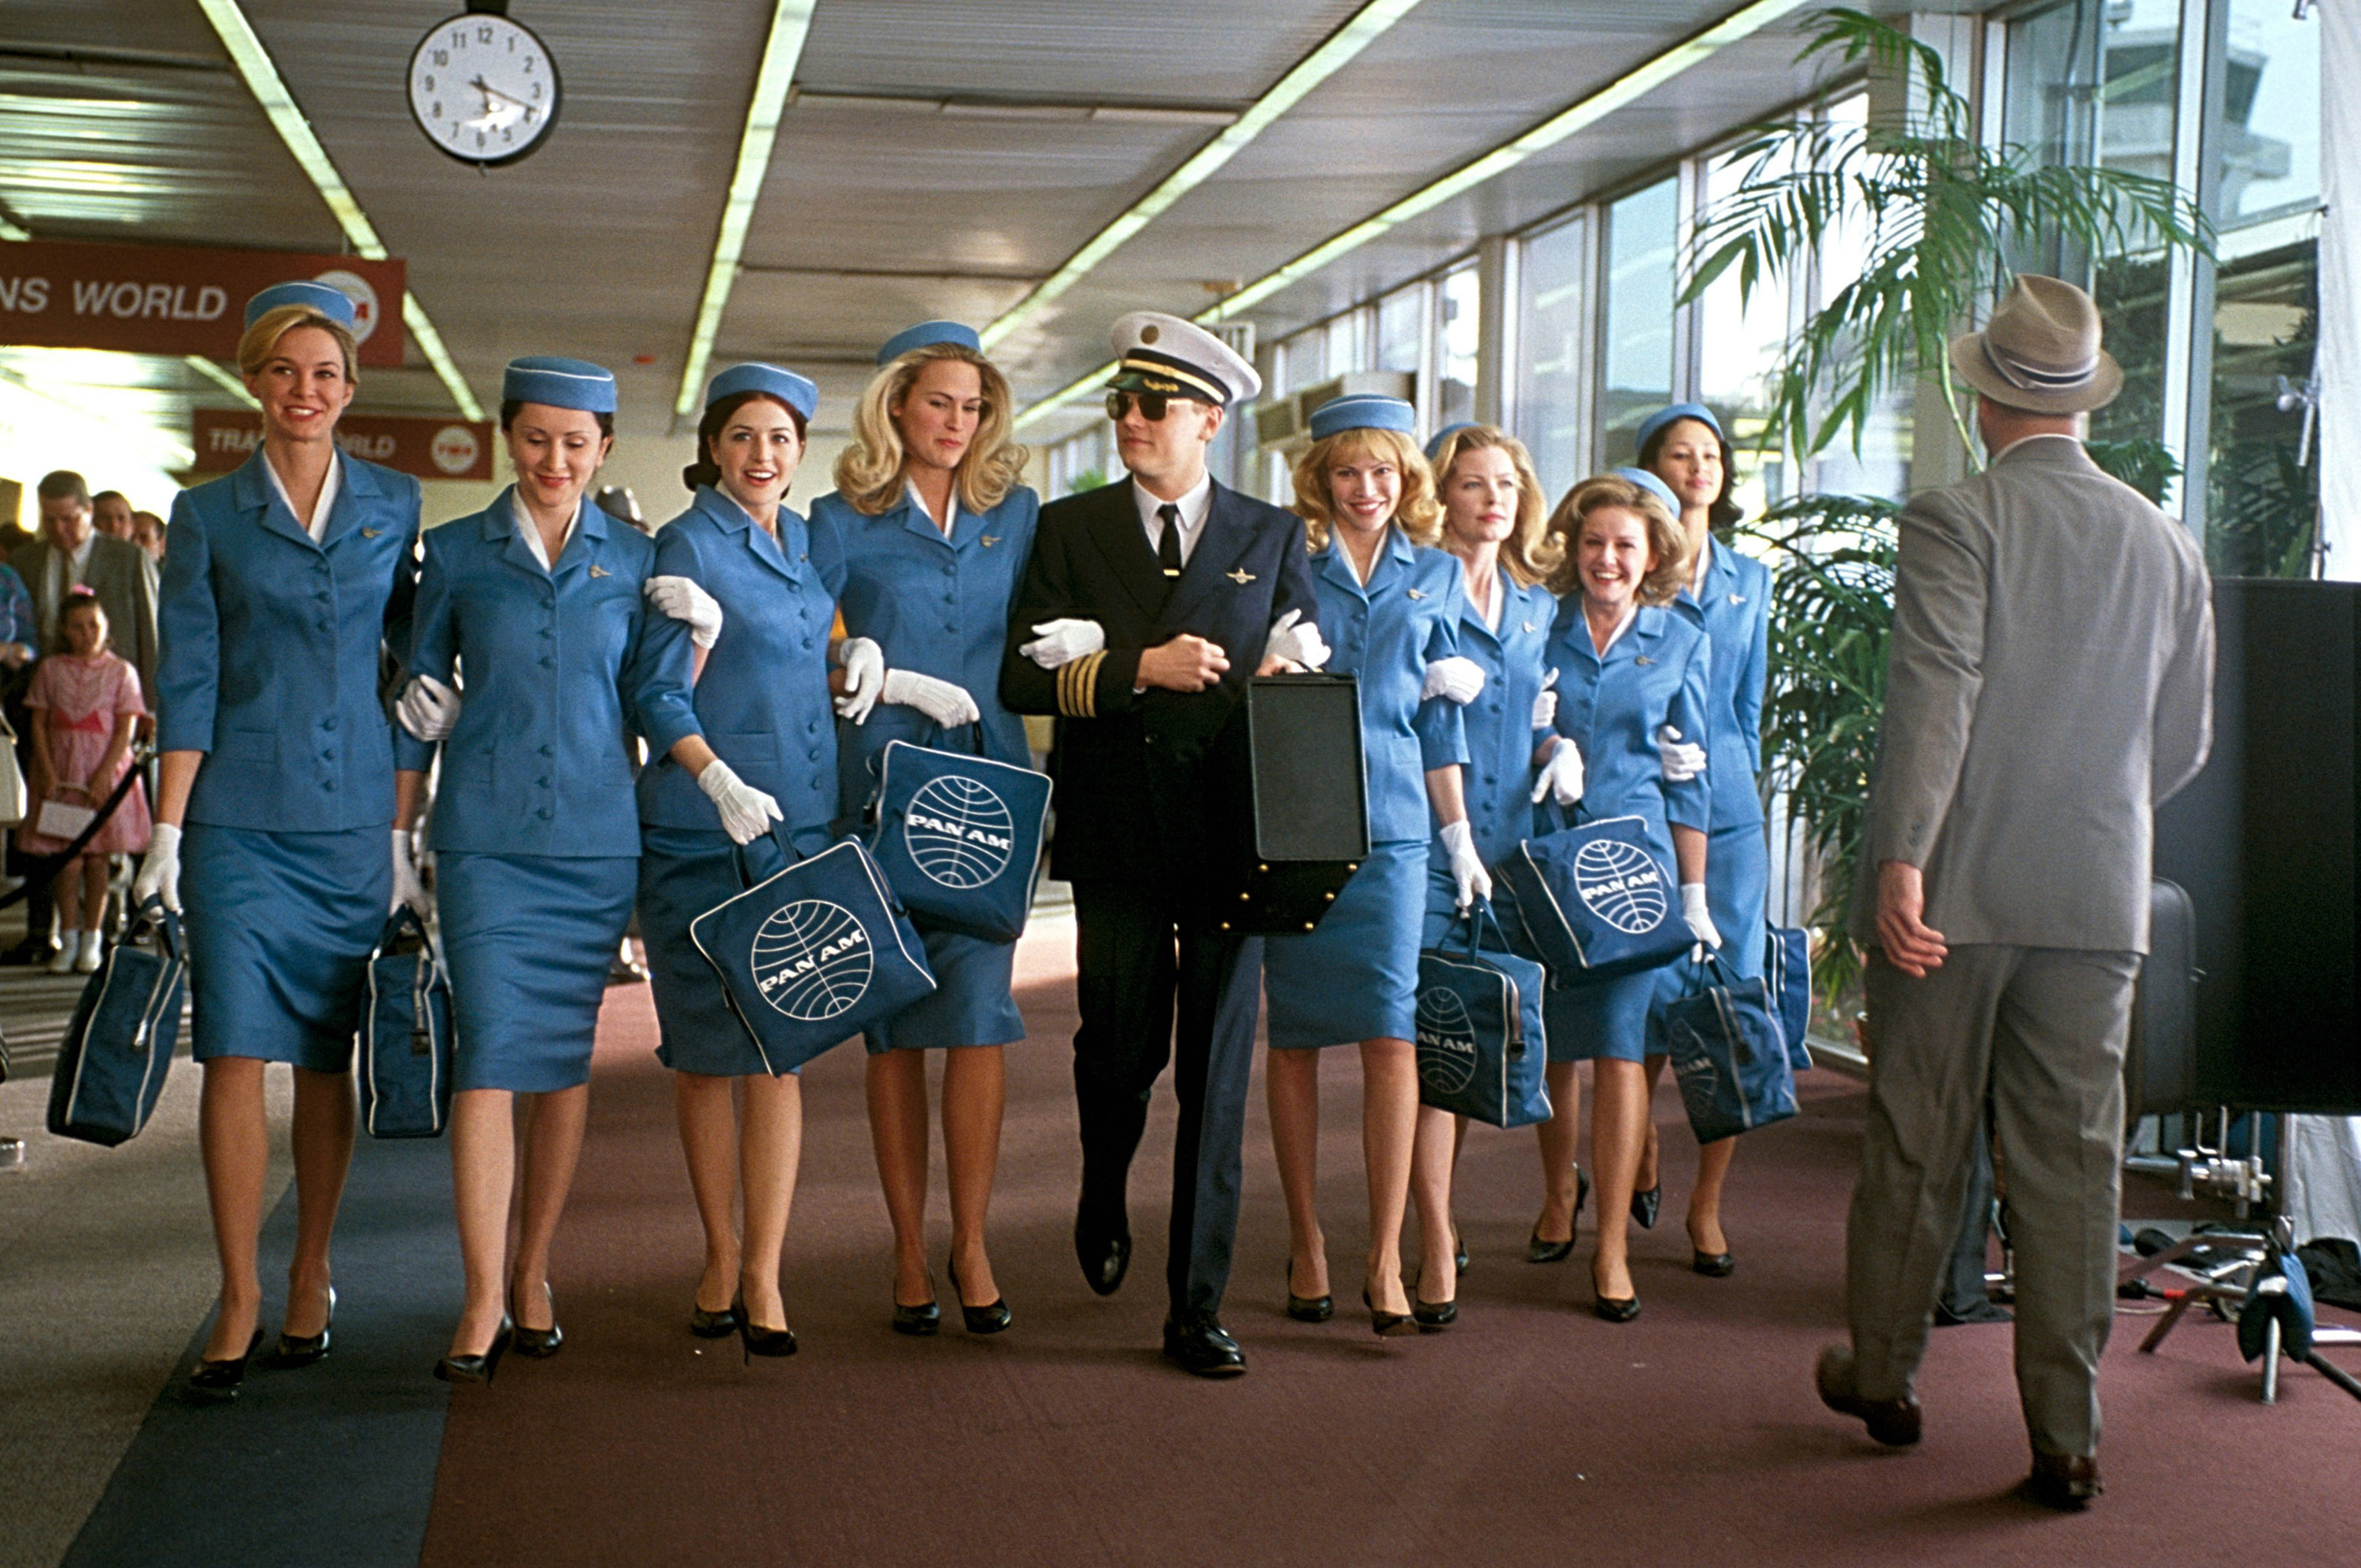 Leonardo Di Caprio walks through an airport with a whole group of flight attendants on his arm